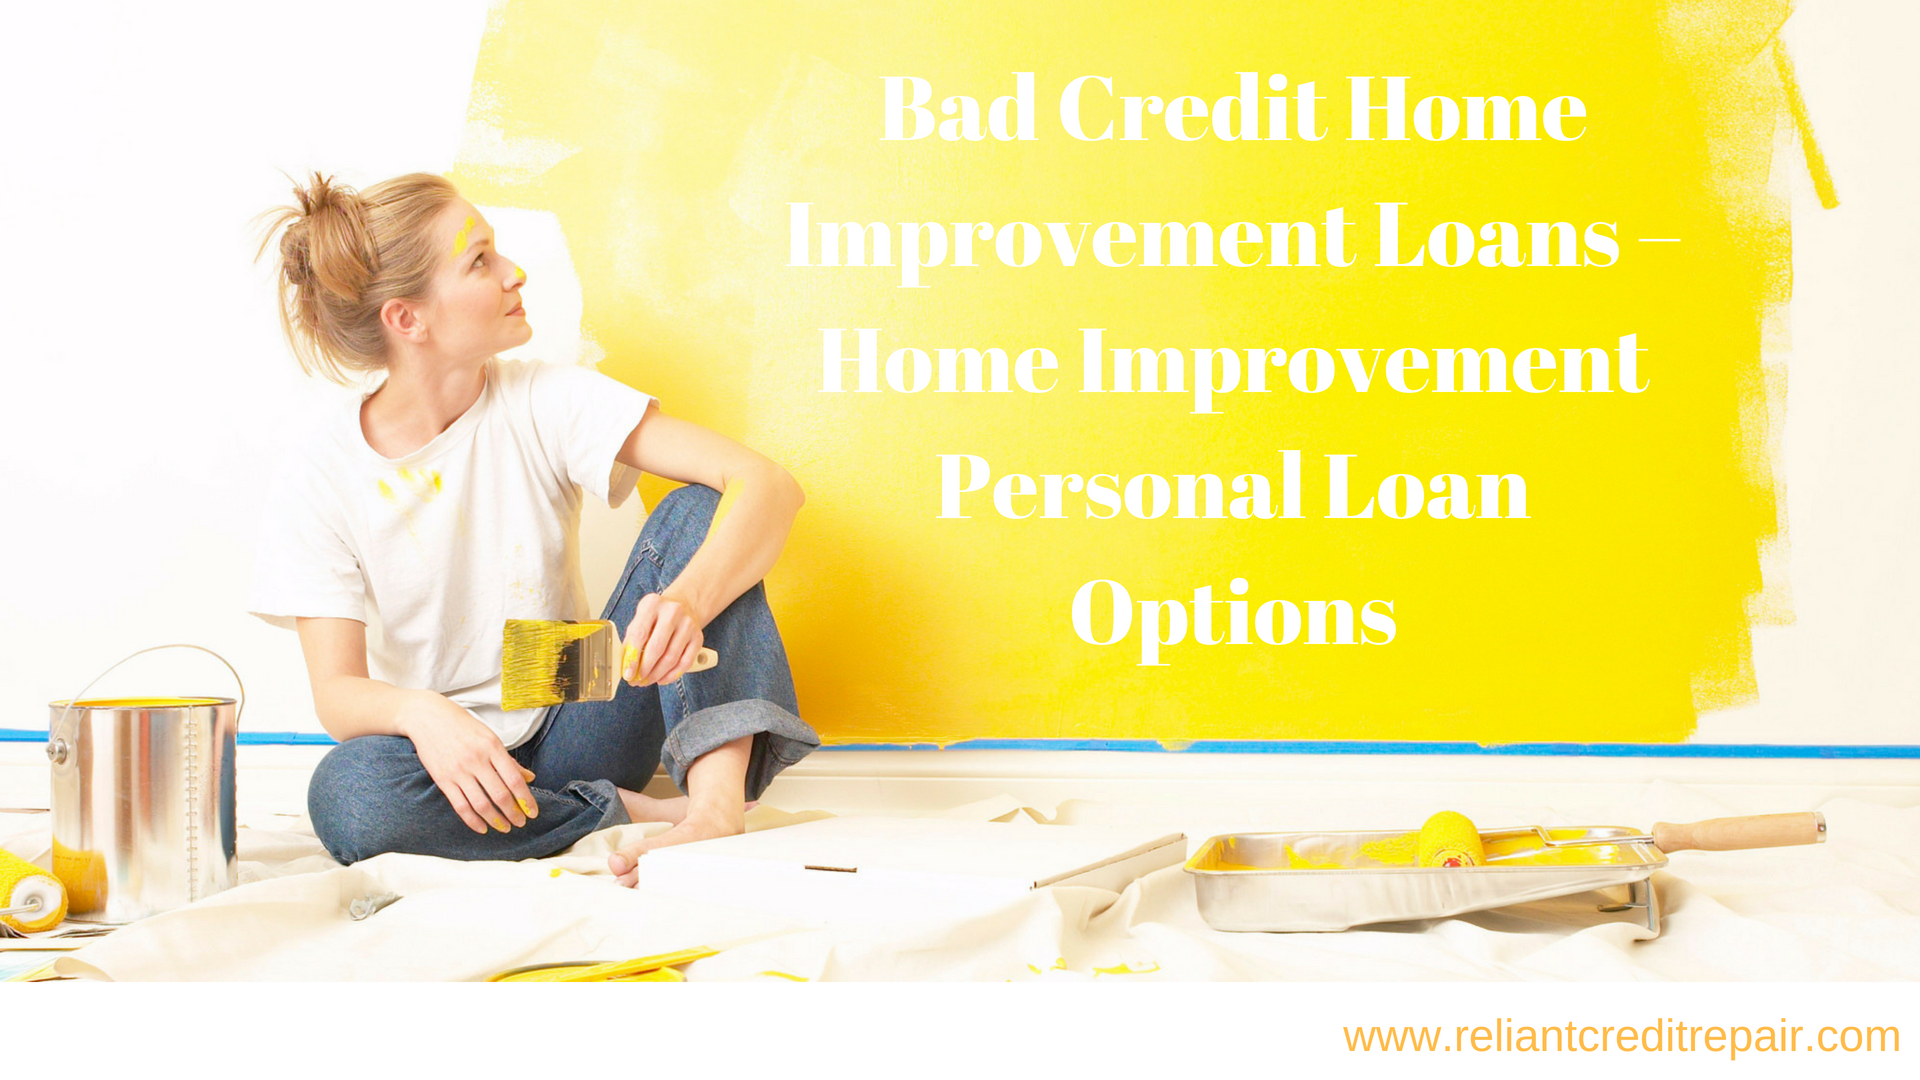 Can I Get A Home Improvement Loan With Bad Credit